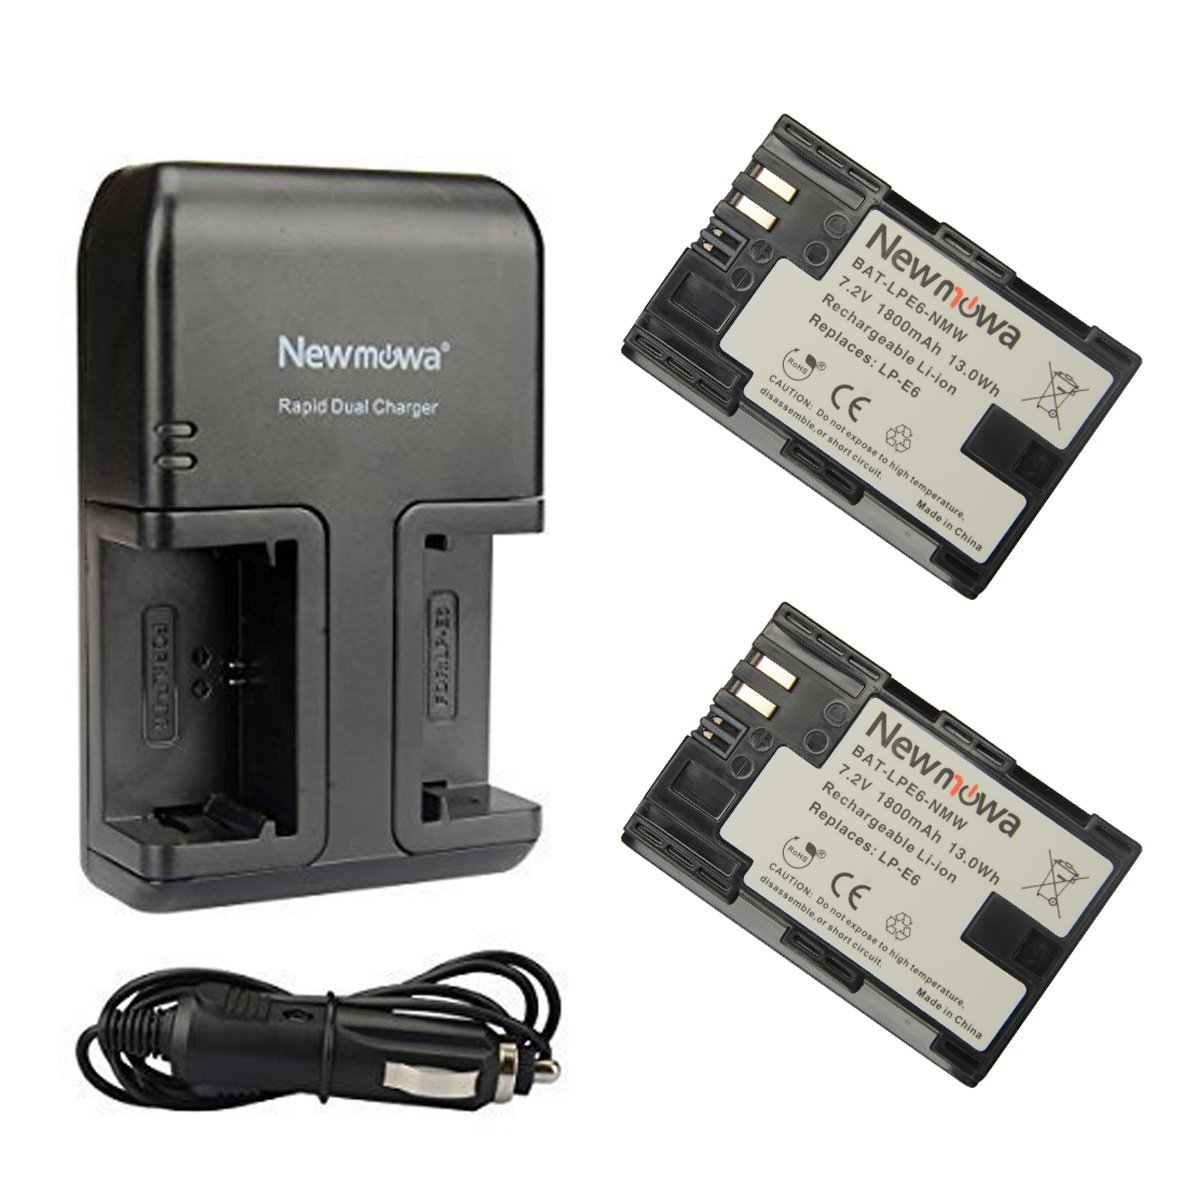 Newnowa LP-E6 Replacement Battery (2 pack) and Dual AC Charger for Canon LP-E6, LP-E6N and EOS 5D Mark IV, EOS 5D Mark III, EOS 5D Mark II, EOS 6D, EOS 7D, EOS 7D Mark II, EOS 60D,EOS 70D